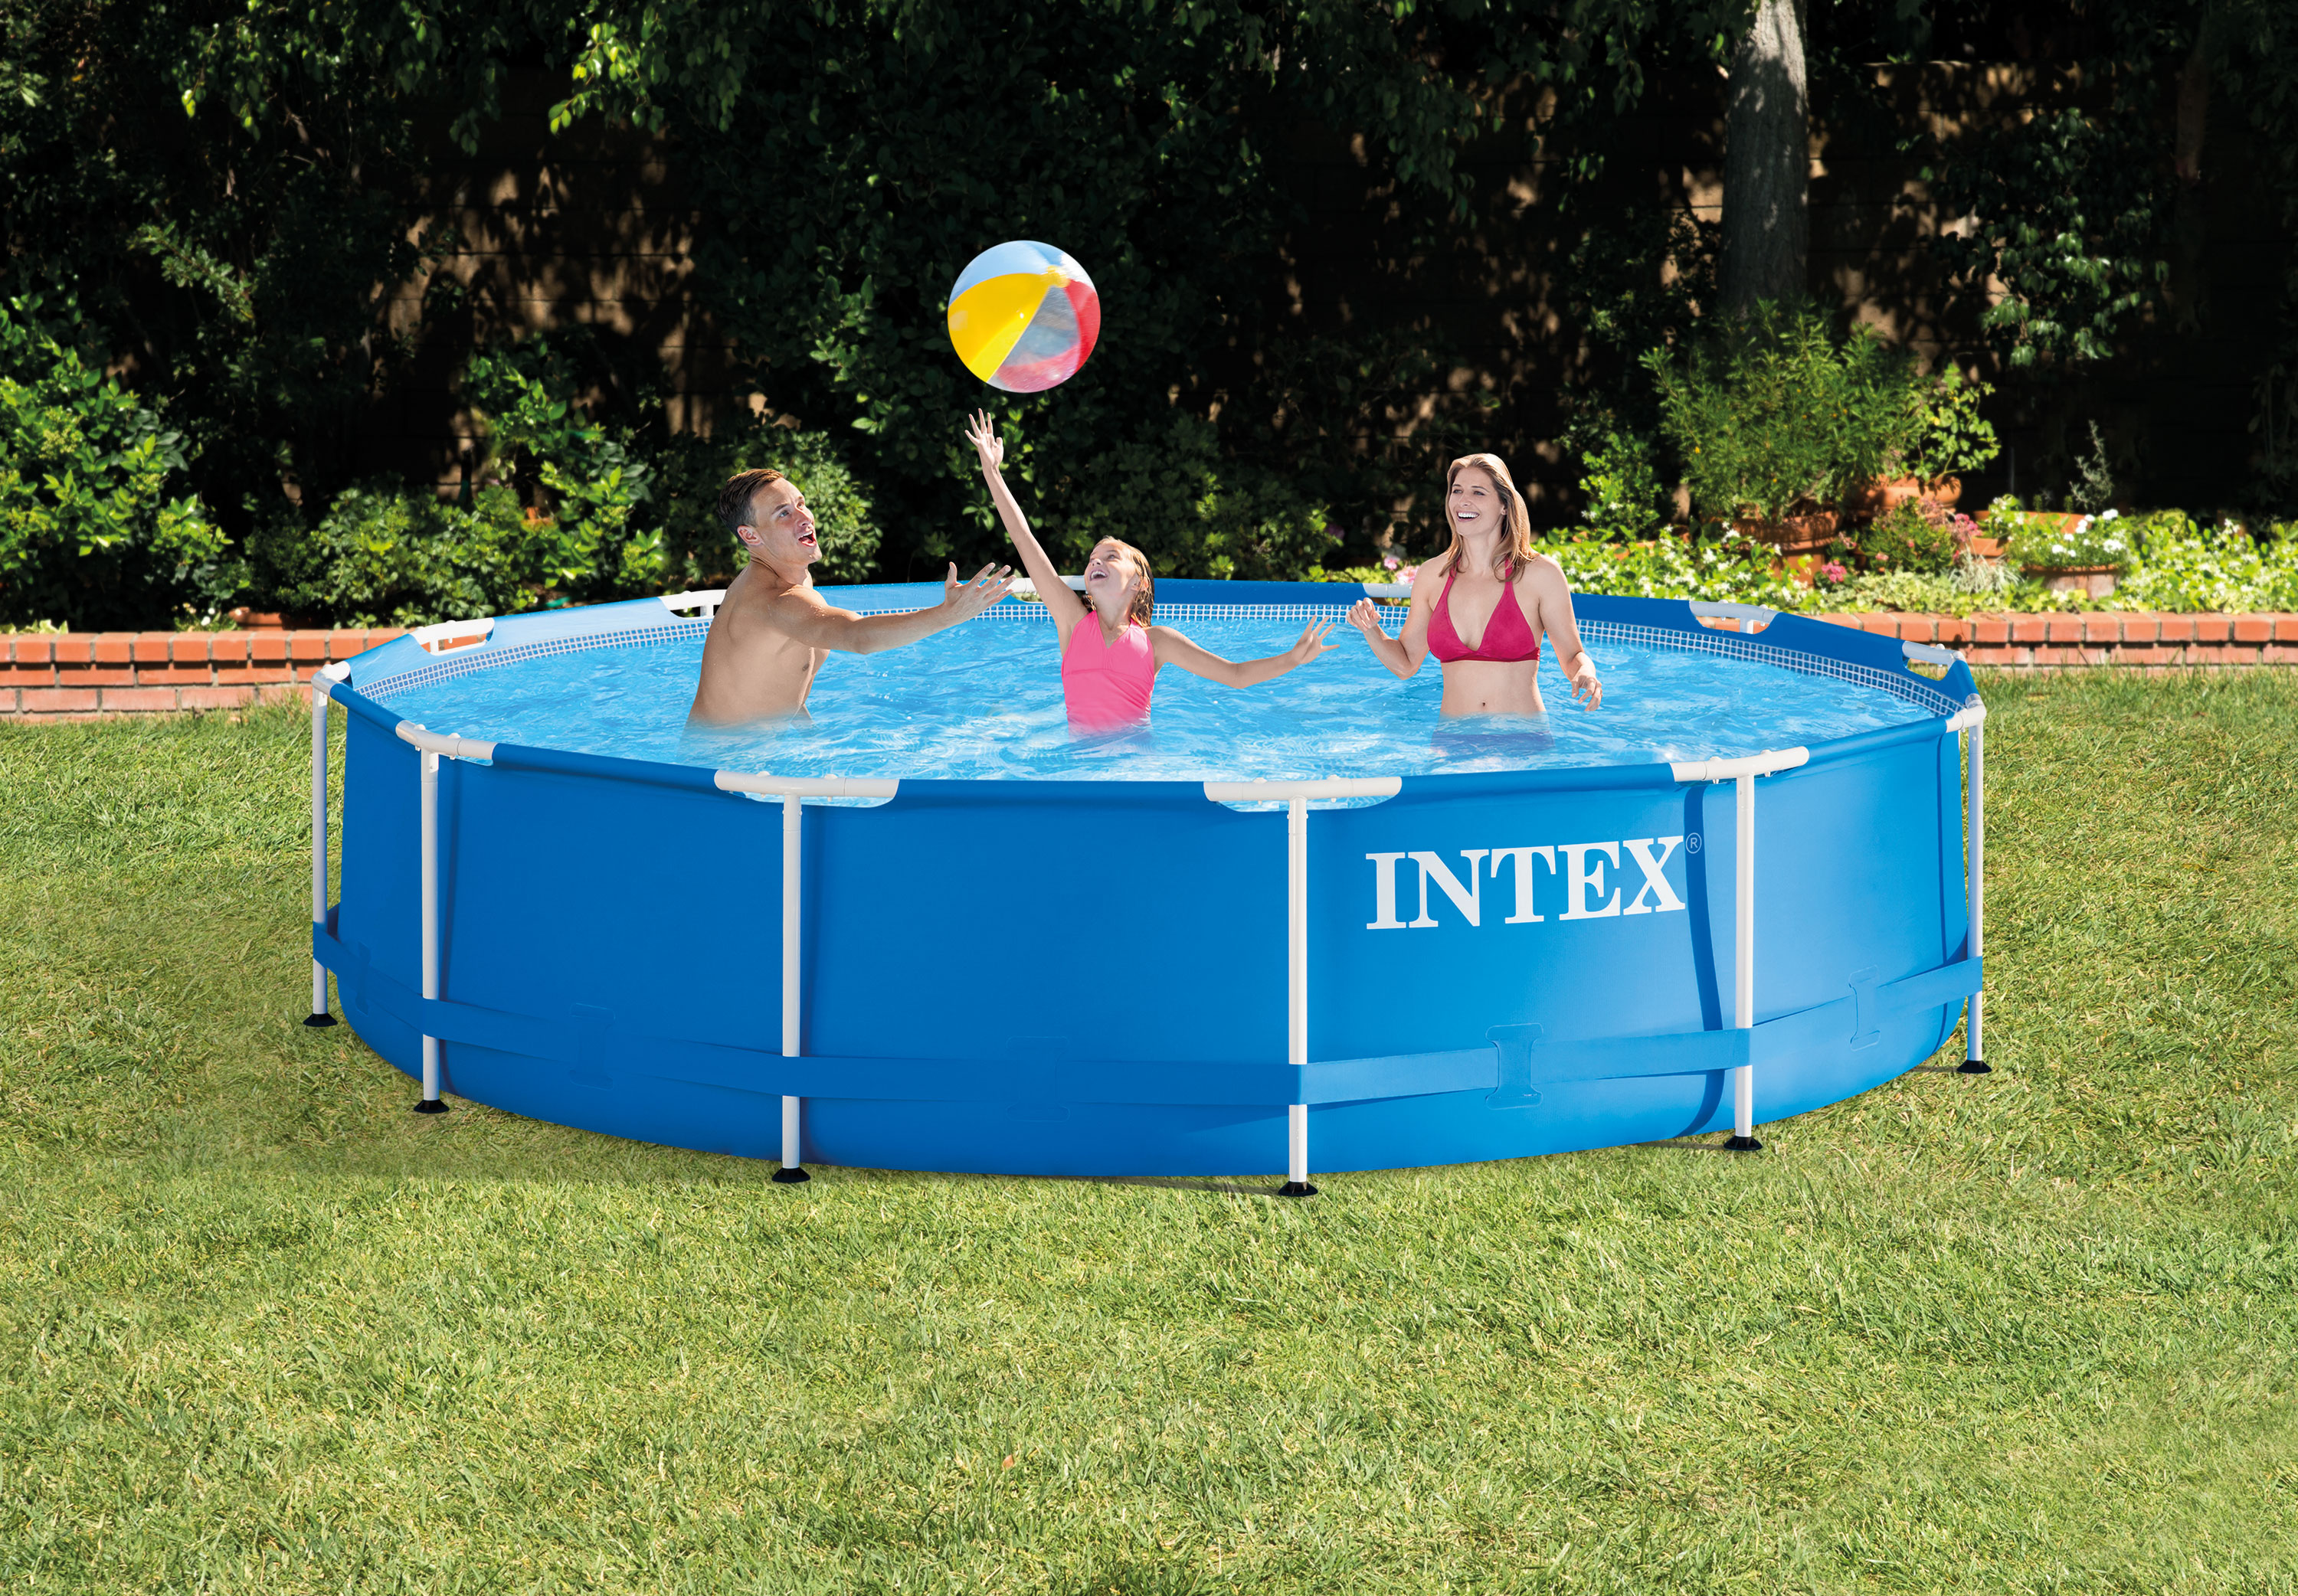 Intex 12 39 x 30 metal frame set swimming pool w 530 gph pump filters 28211eh ebay - Steel frame pool ...